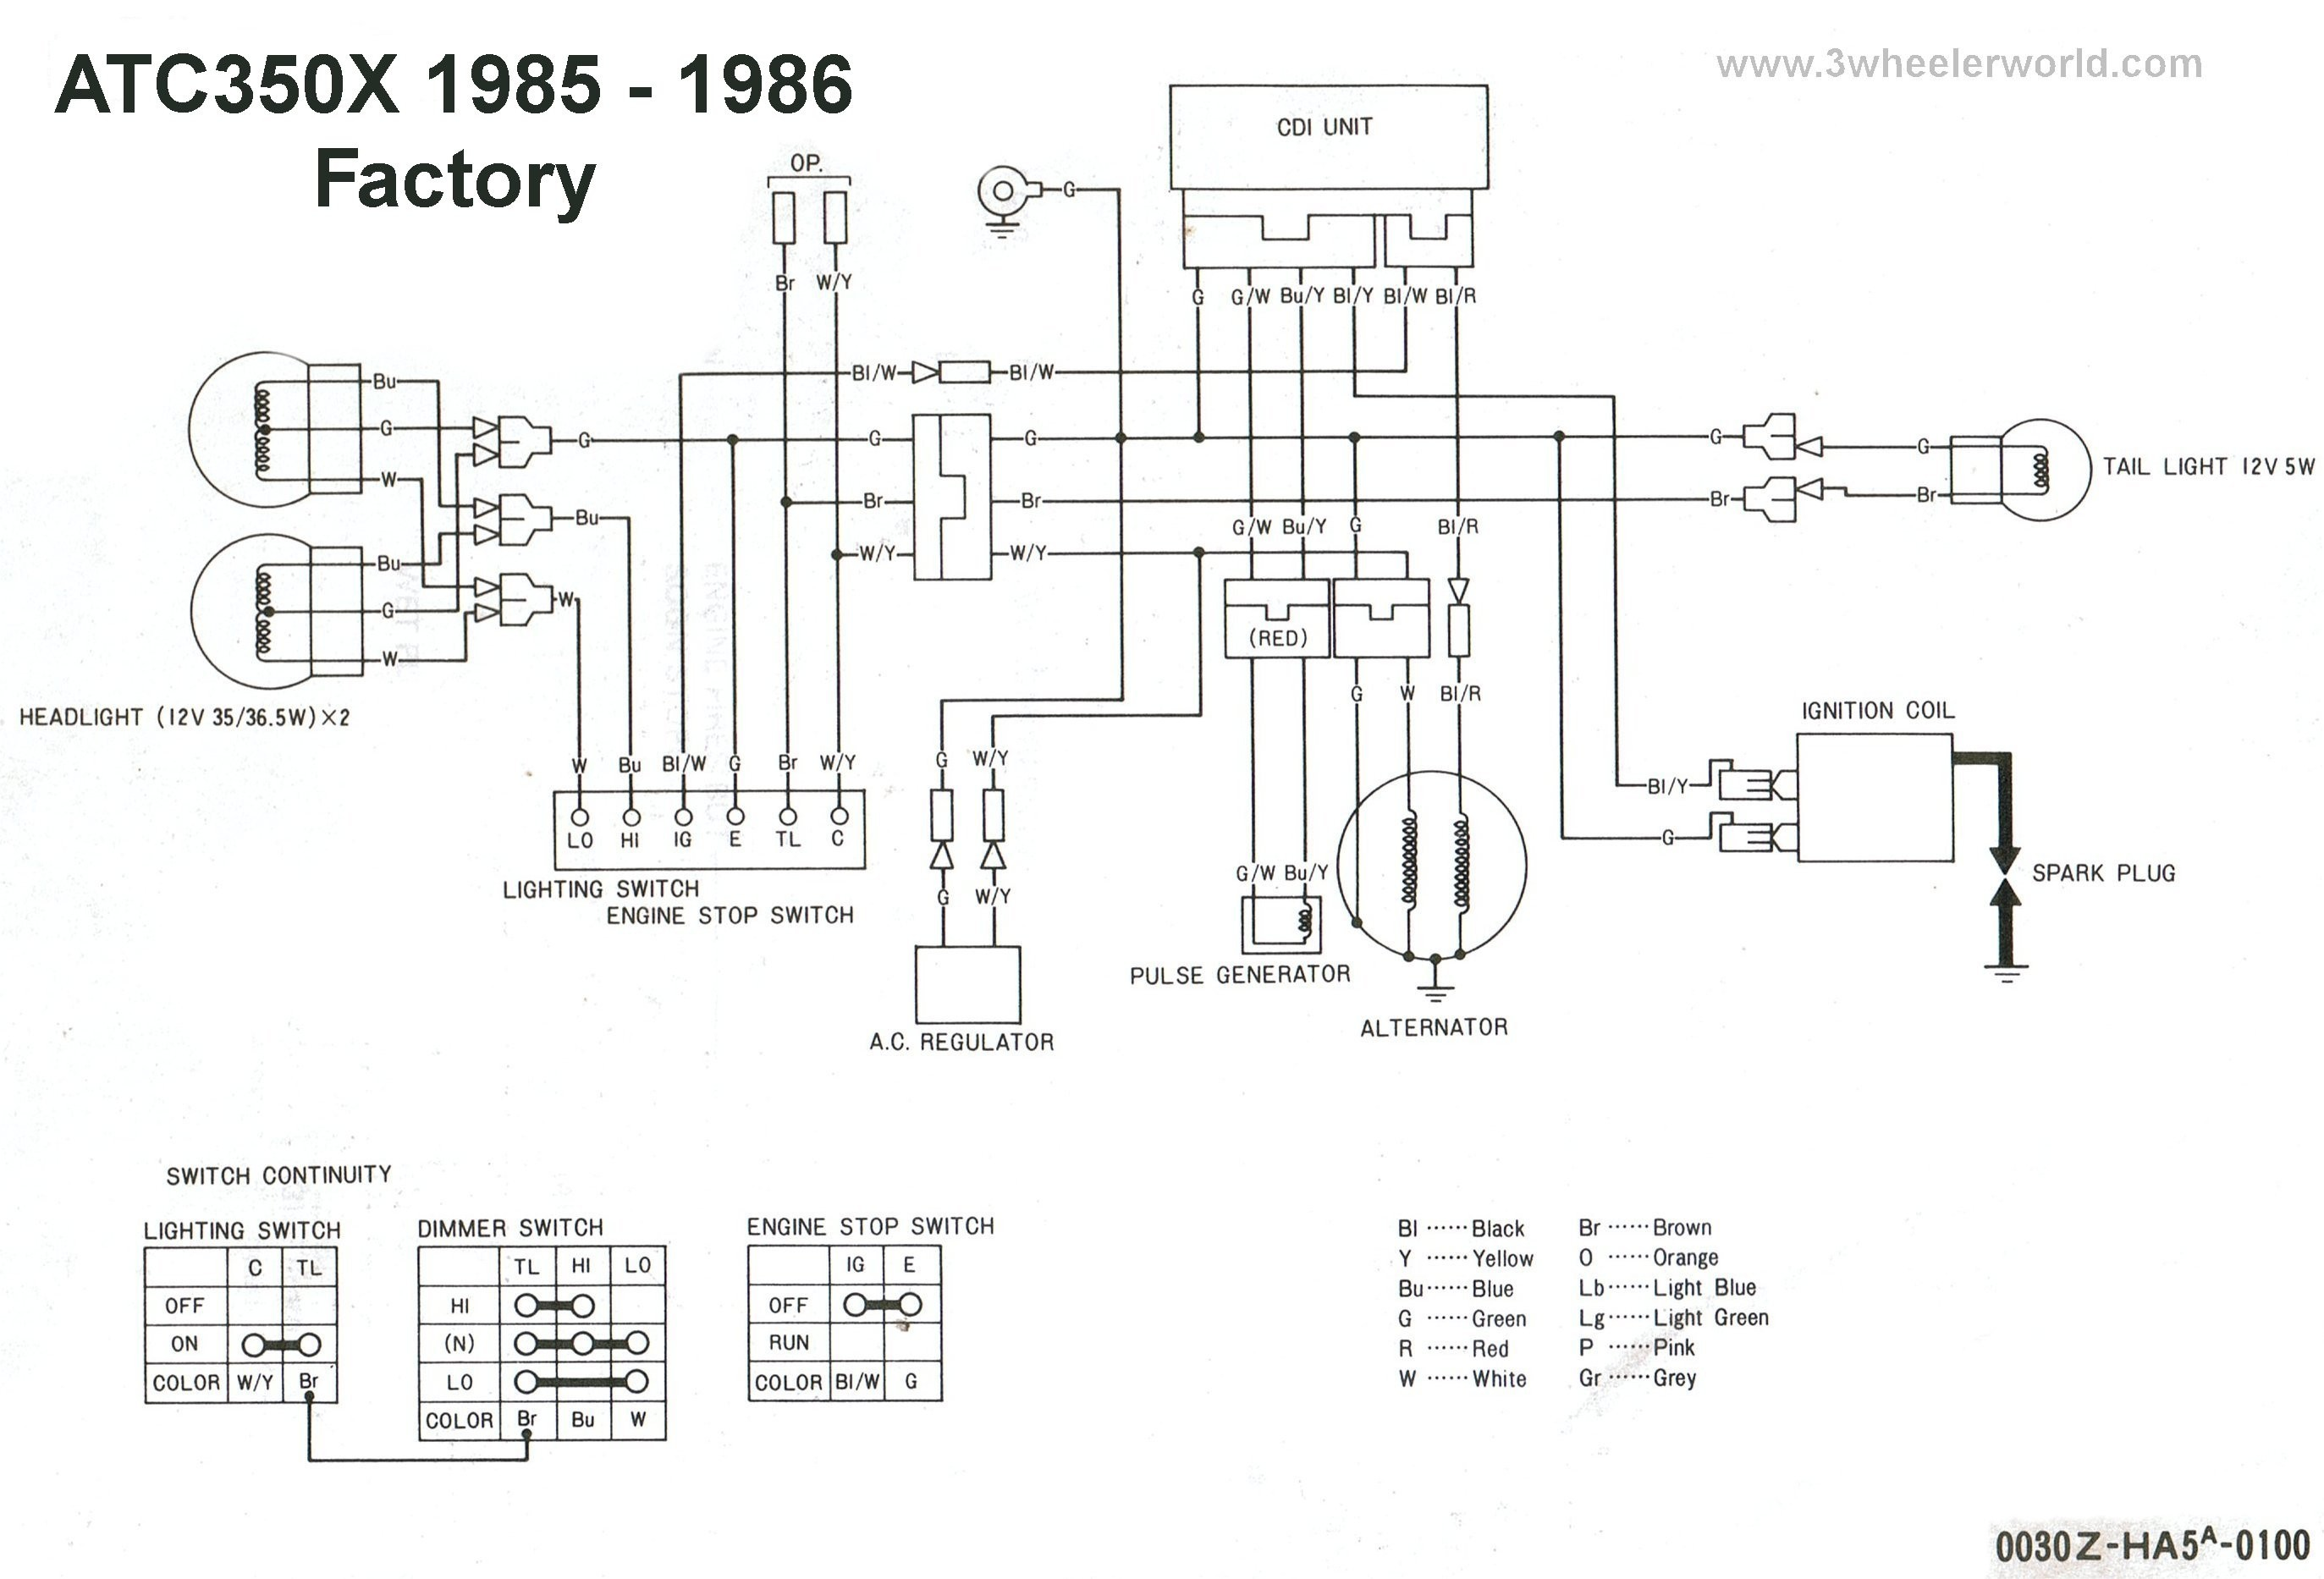 Schematics For Honda Atv S 1998 300 Wire Center Projects E Easyclapswitch Images Clap Switch Using 3 Modulesjpg 1986 Trx 350 Wiring Diagram U2022 Rh Boomerneur Co 4 Trax